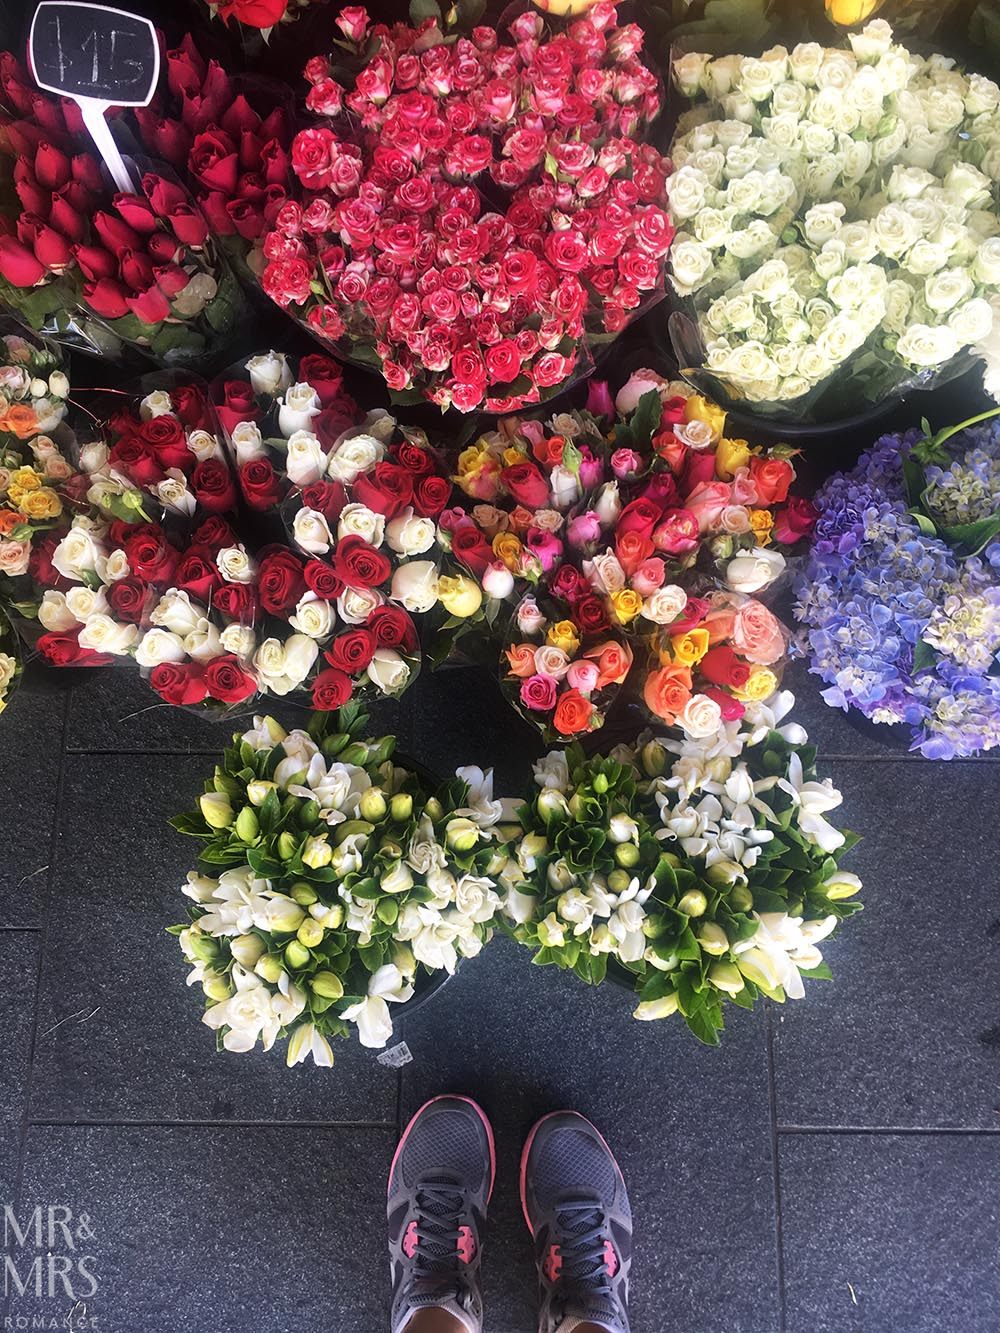 Flowers and feet #bloglyf